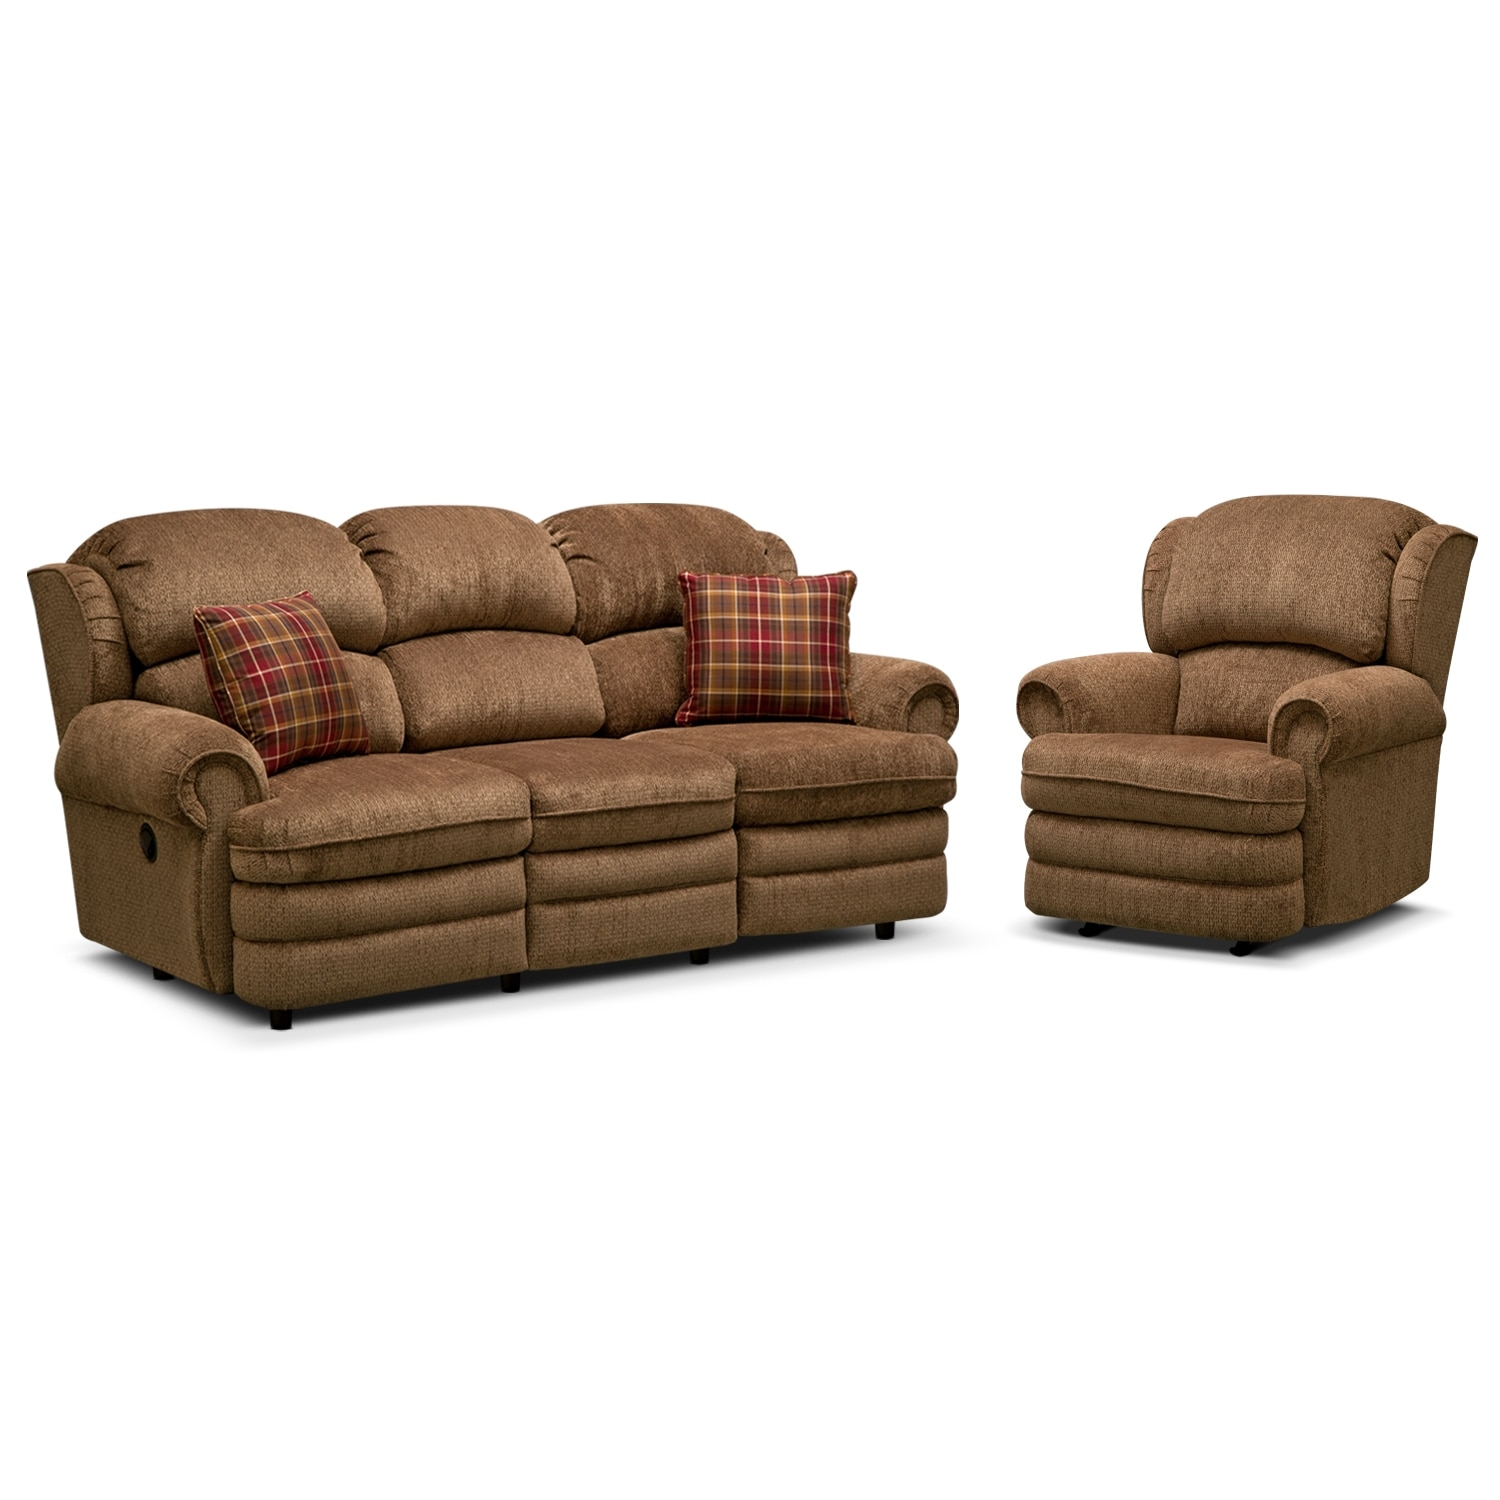 Living Room Furniture - Addison 2 Pc. Reclining Living Room w/Rocker Recliner